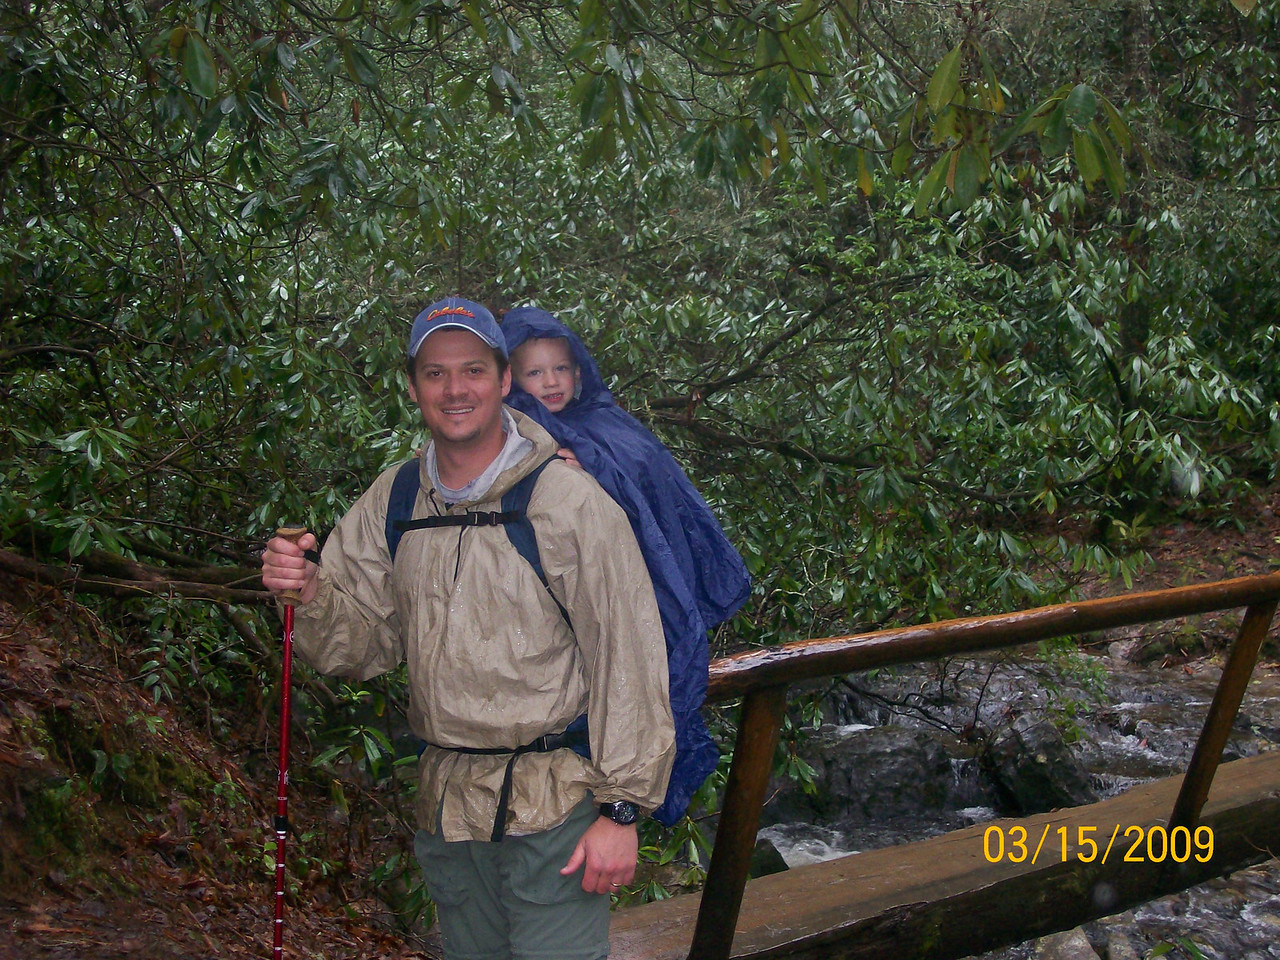 My son Trenton along for the ride to Abrams Creek Falls. GSMNP